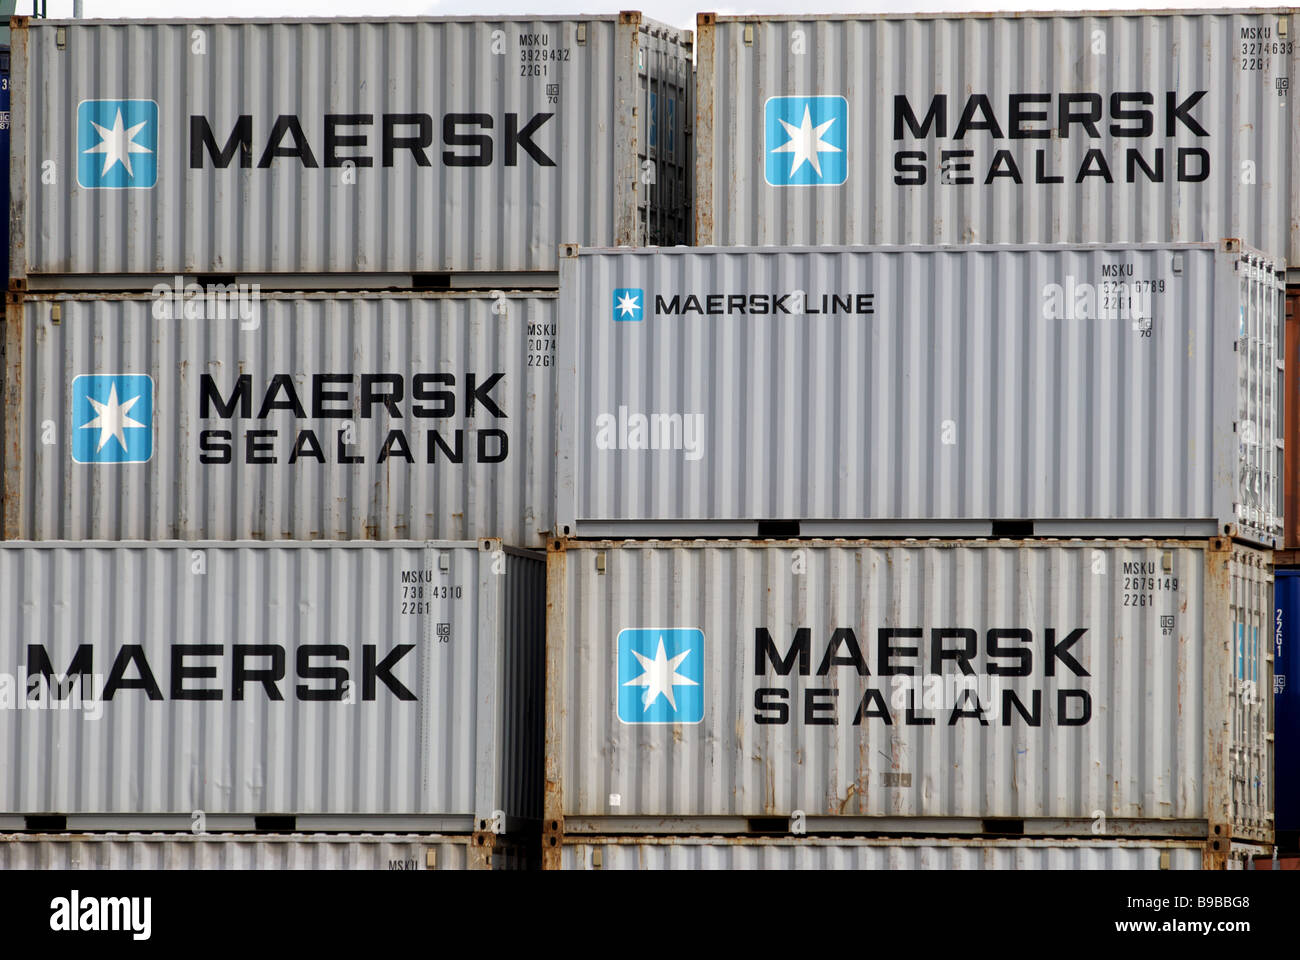 Maersk Sealand containers, Cologne Niel freight terminal, Germany. - Stock Image